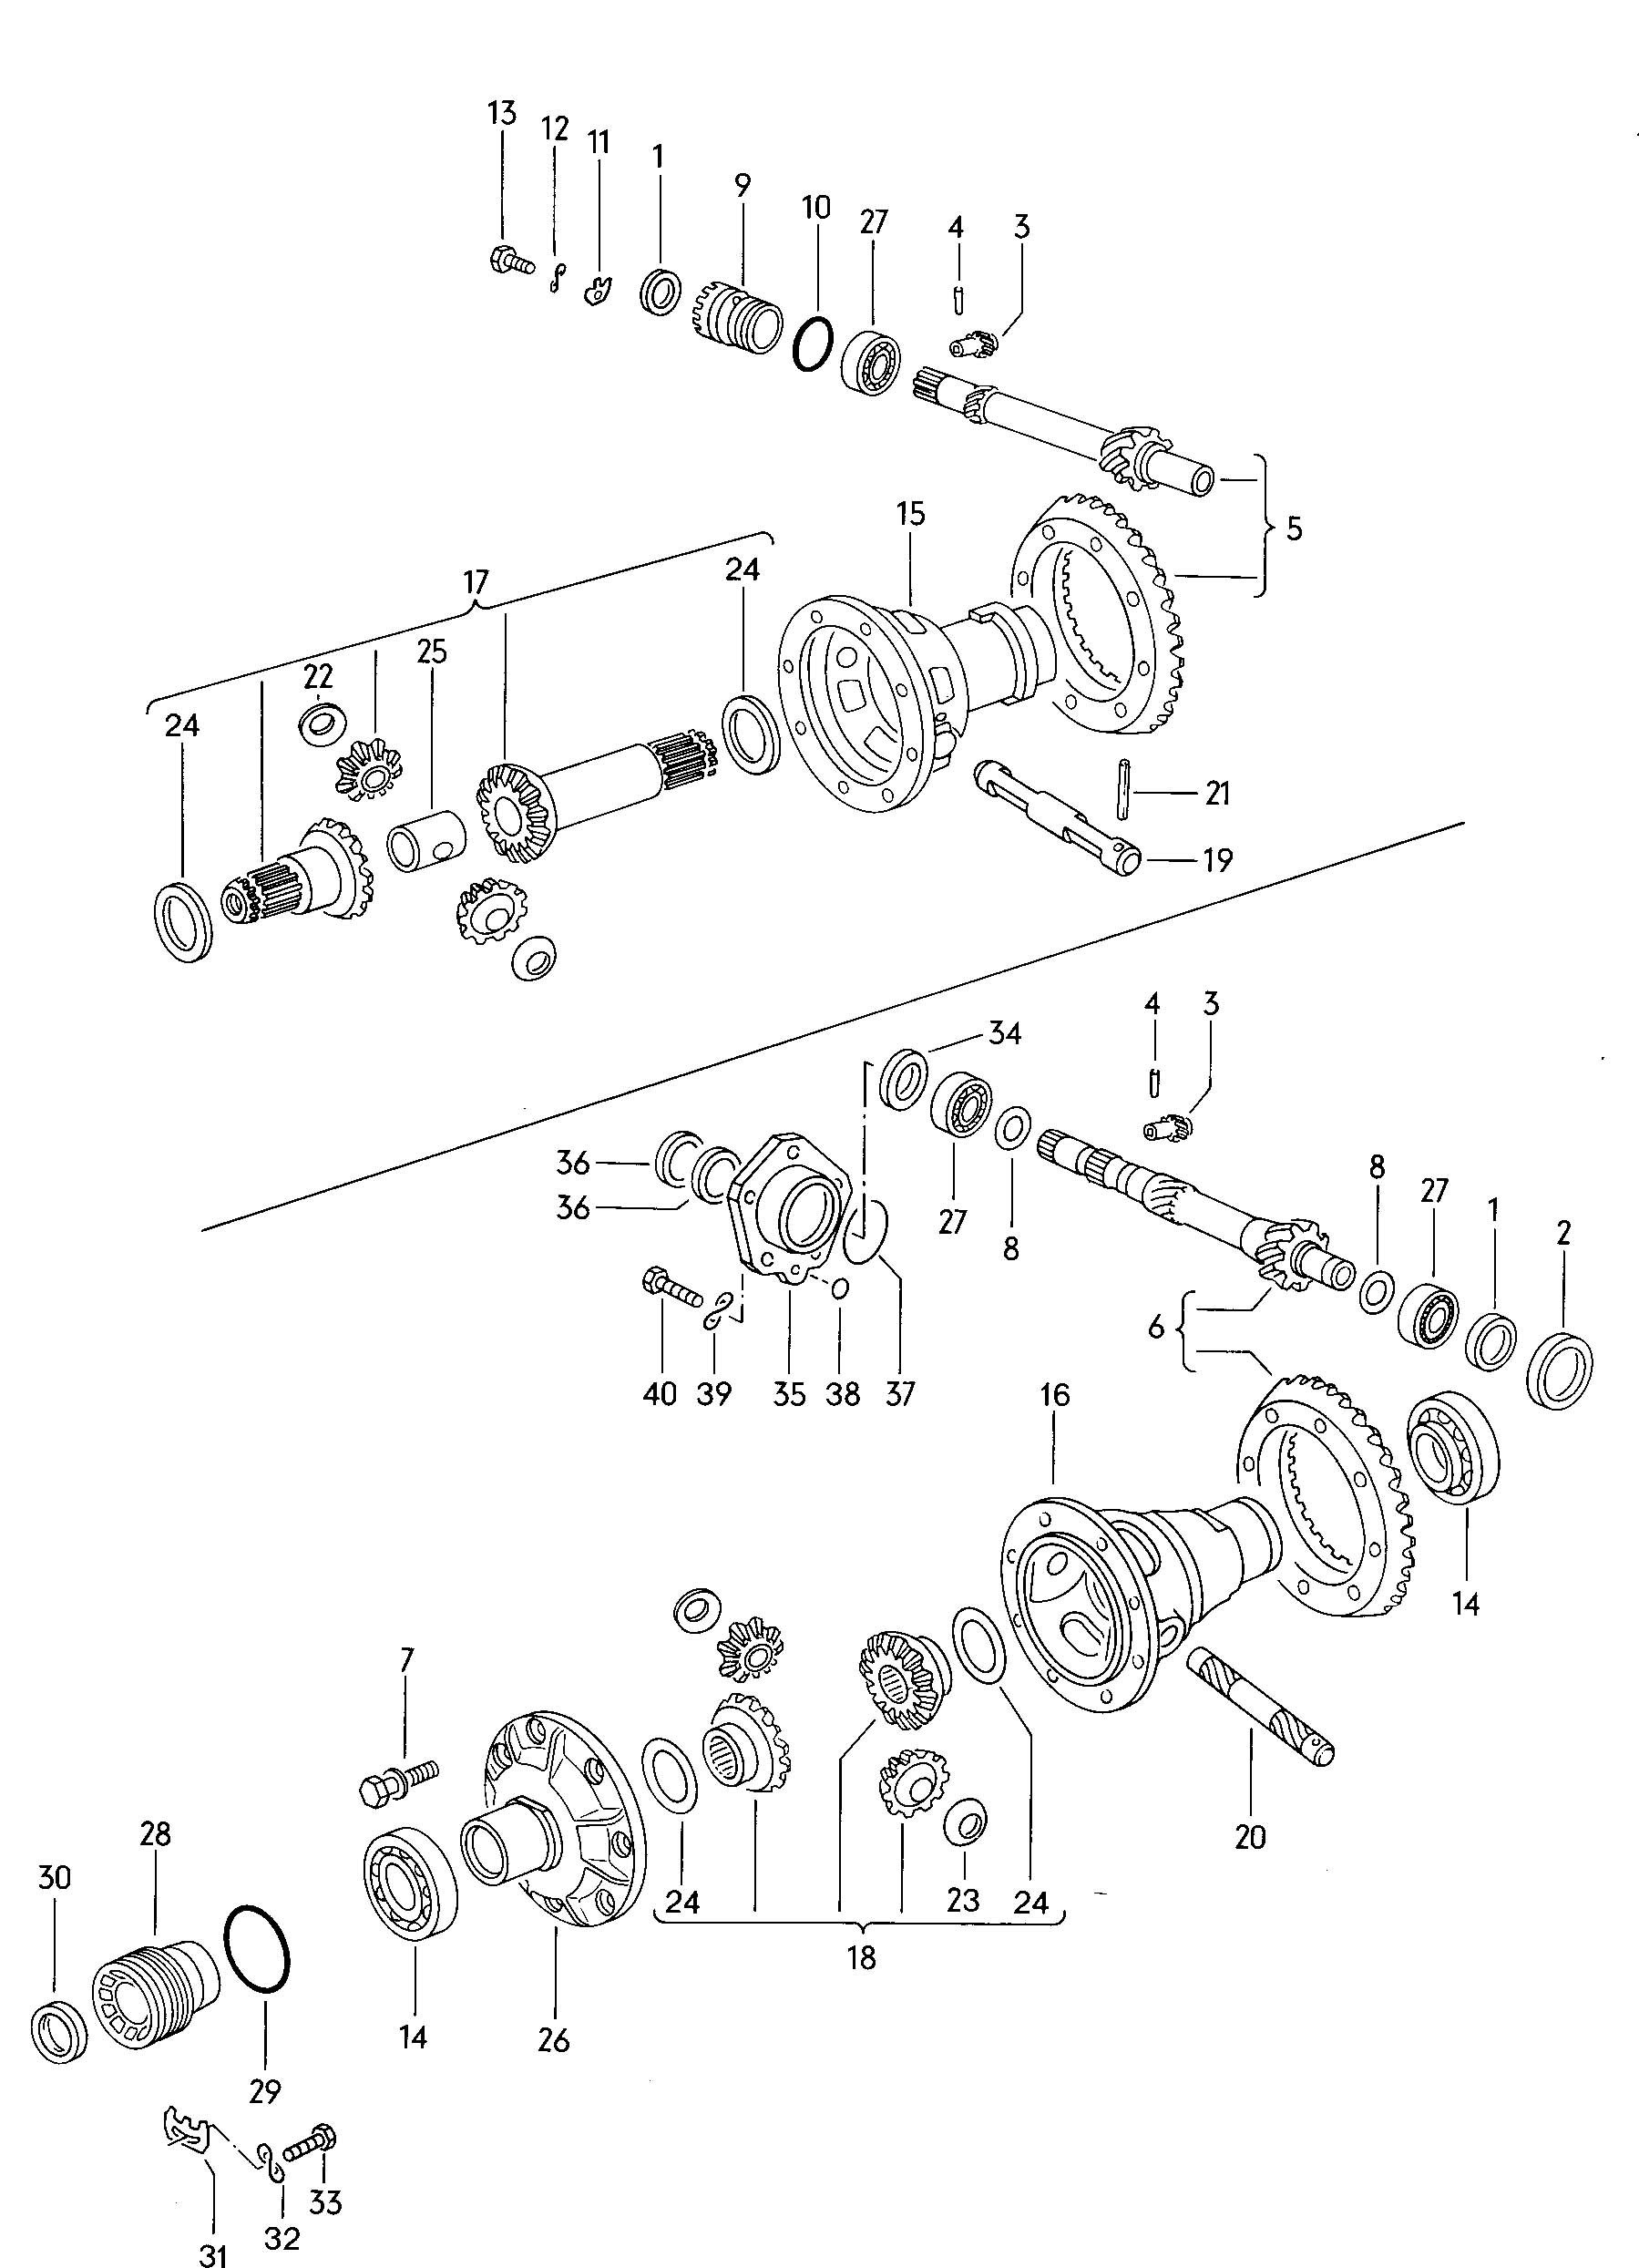 Volkswagen Type 2 Differential 3 Speed Automatic Transmission